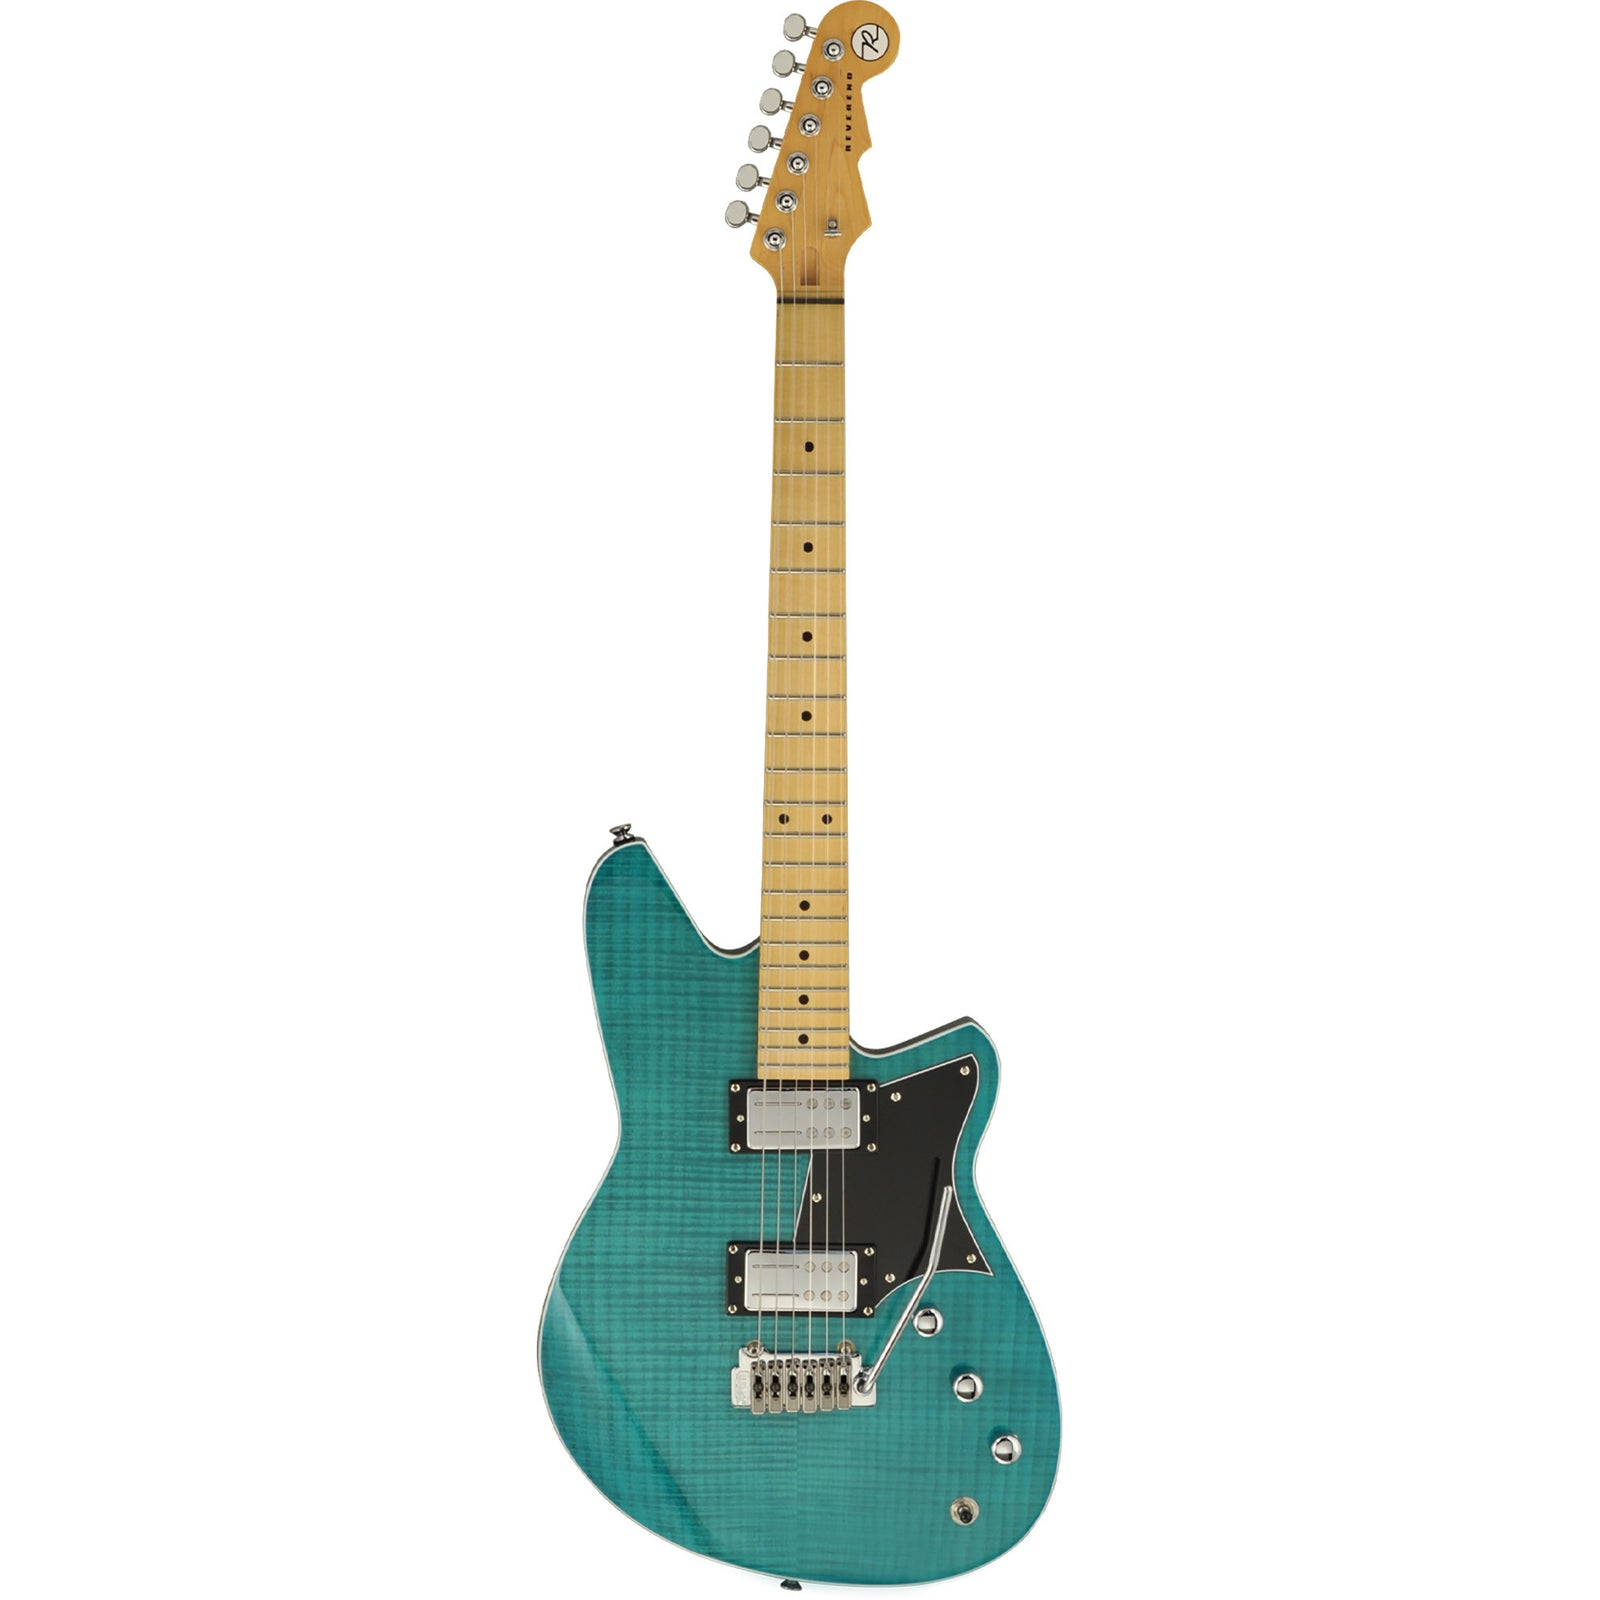 Reverend Kingbolt RA Flamed Maple With Wilkinson Tremolo - Gloss Turquoise